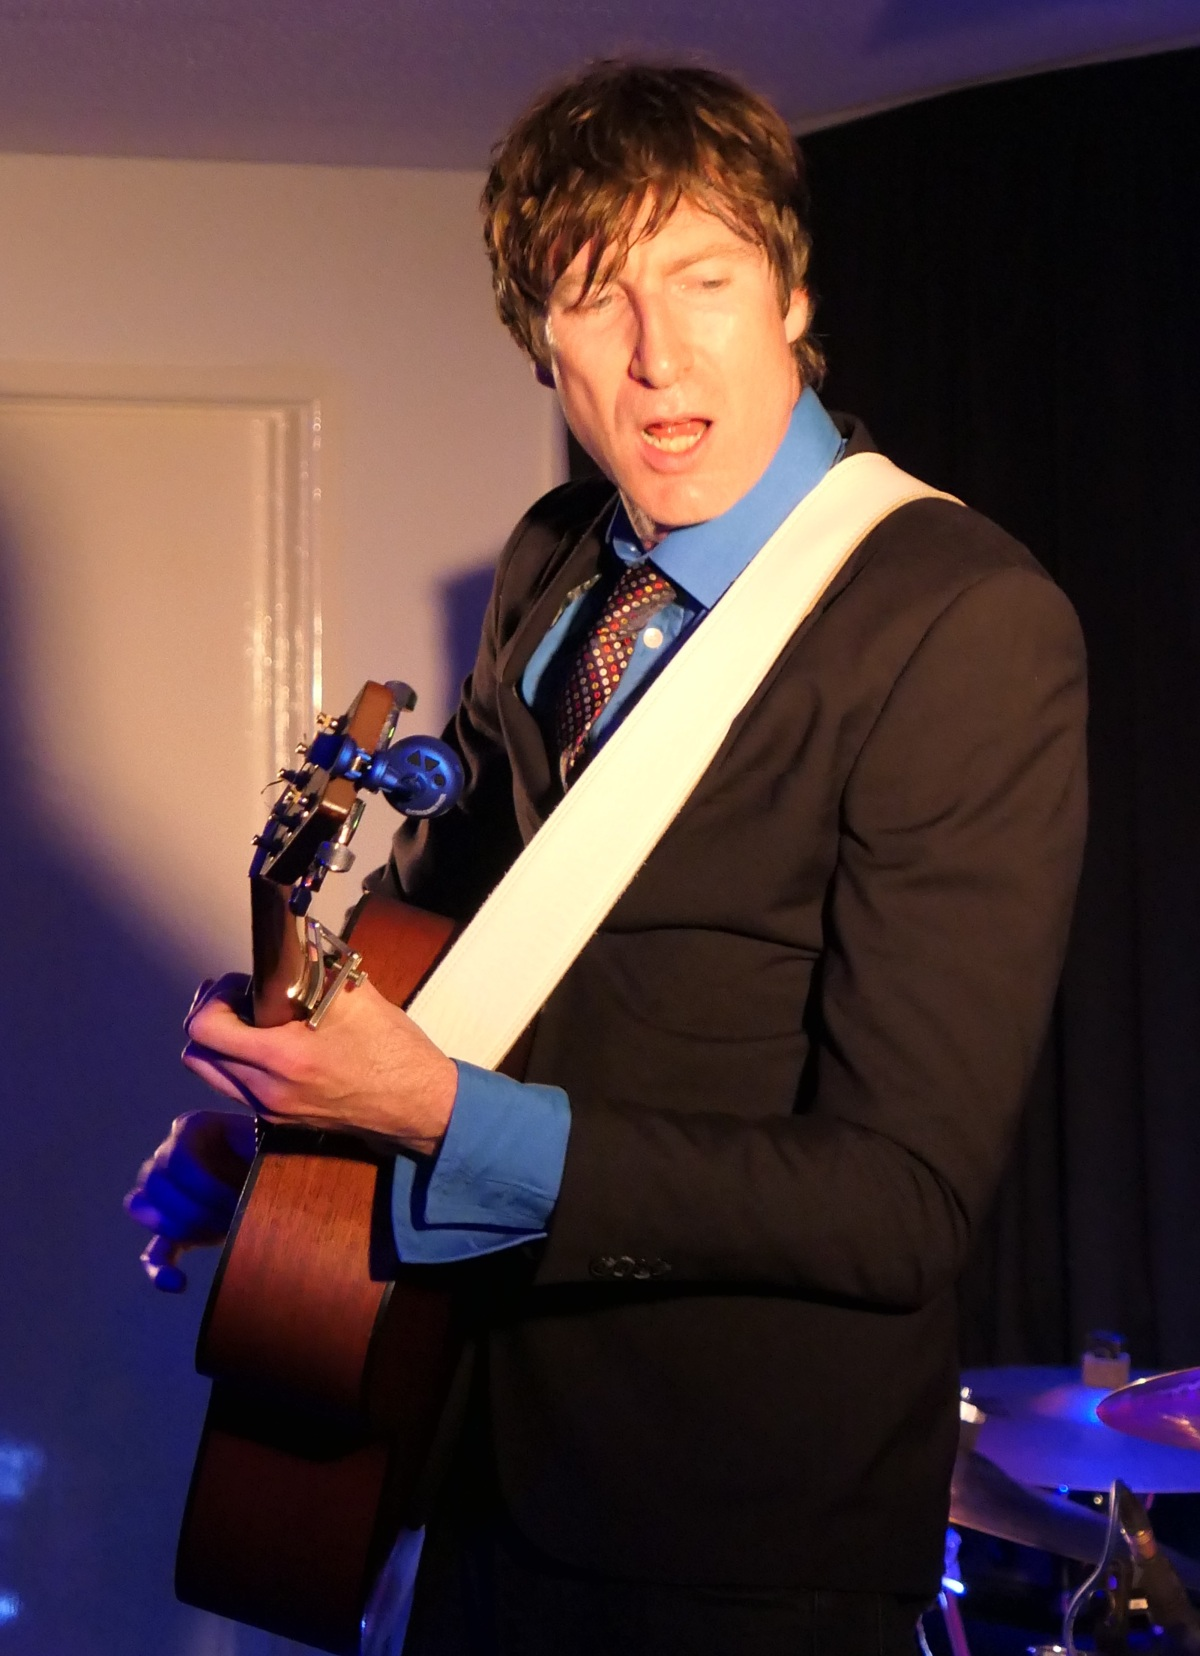 REVIEW – Jon Amor @ Long Street Blues Club, Devizes